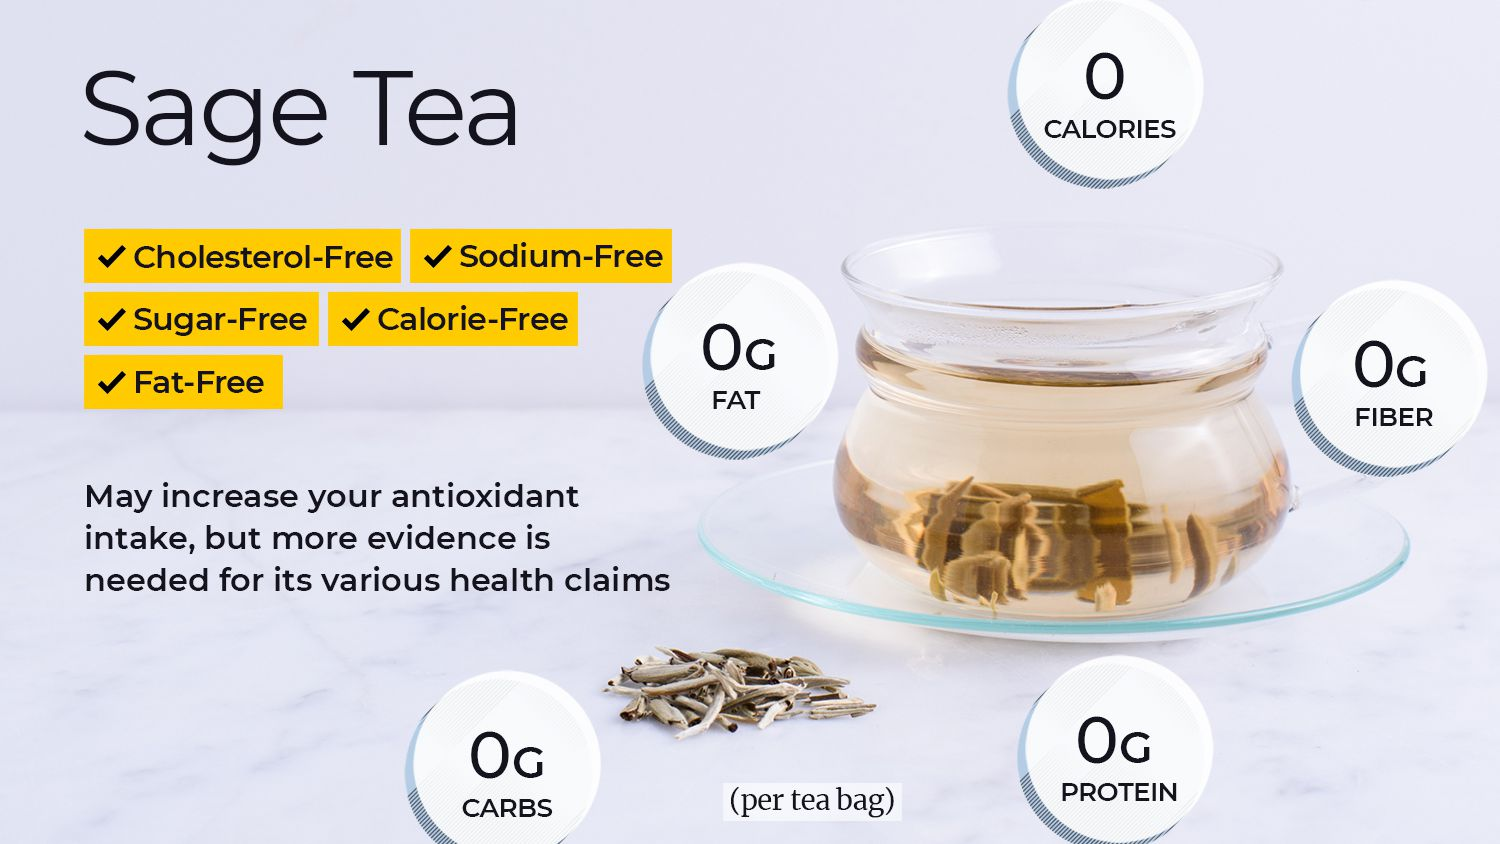 Sage Tea: What Are the Benefits, Uses, and Side Effects?